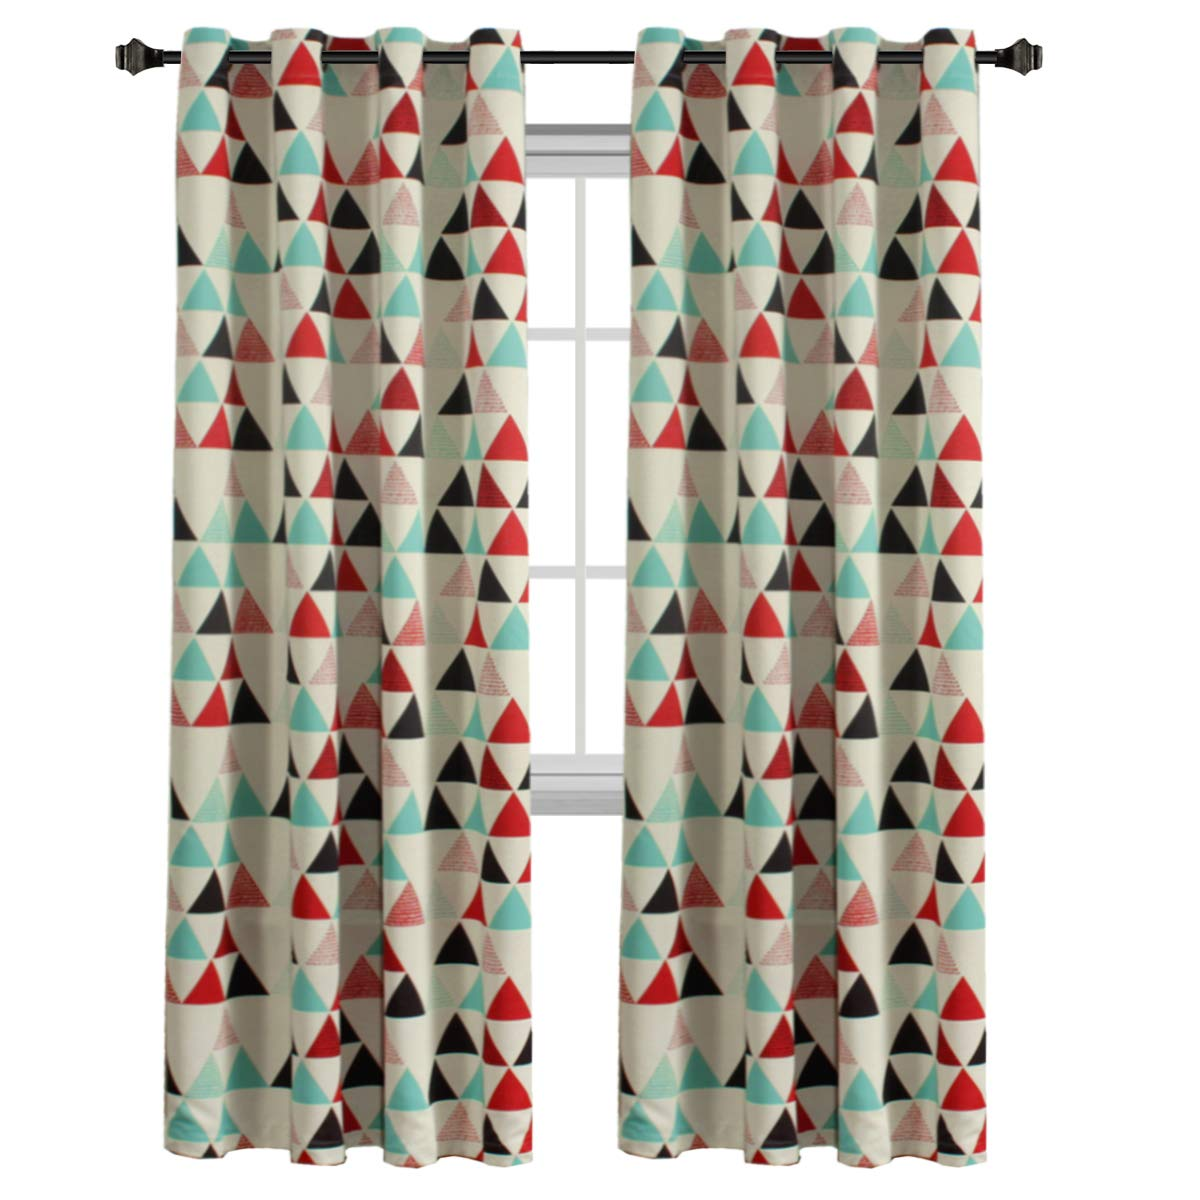 H.VERSAILTEX Ultra Sleep Energy Efficient Blackout Curtain Antique Copper Grommet Panel Drapes for Bedroom/Living Room, 1 Panel, 52x96 Inch Long-Stone Blue/Red/Beige Triangle Pattern